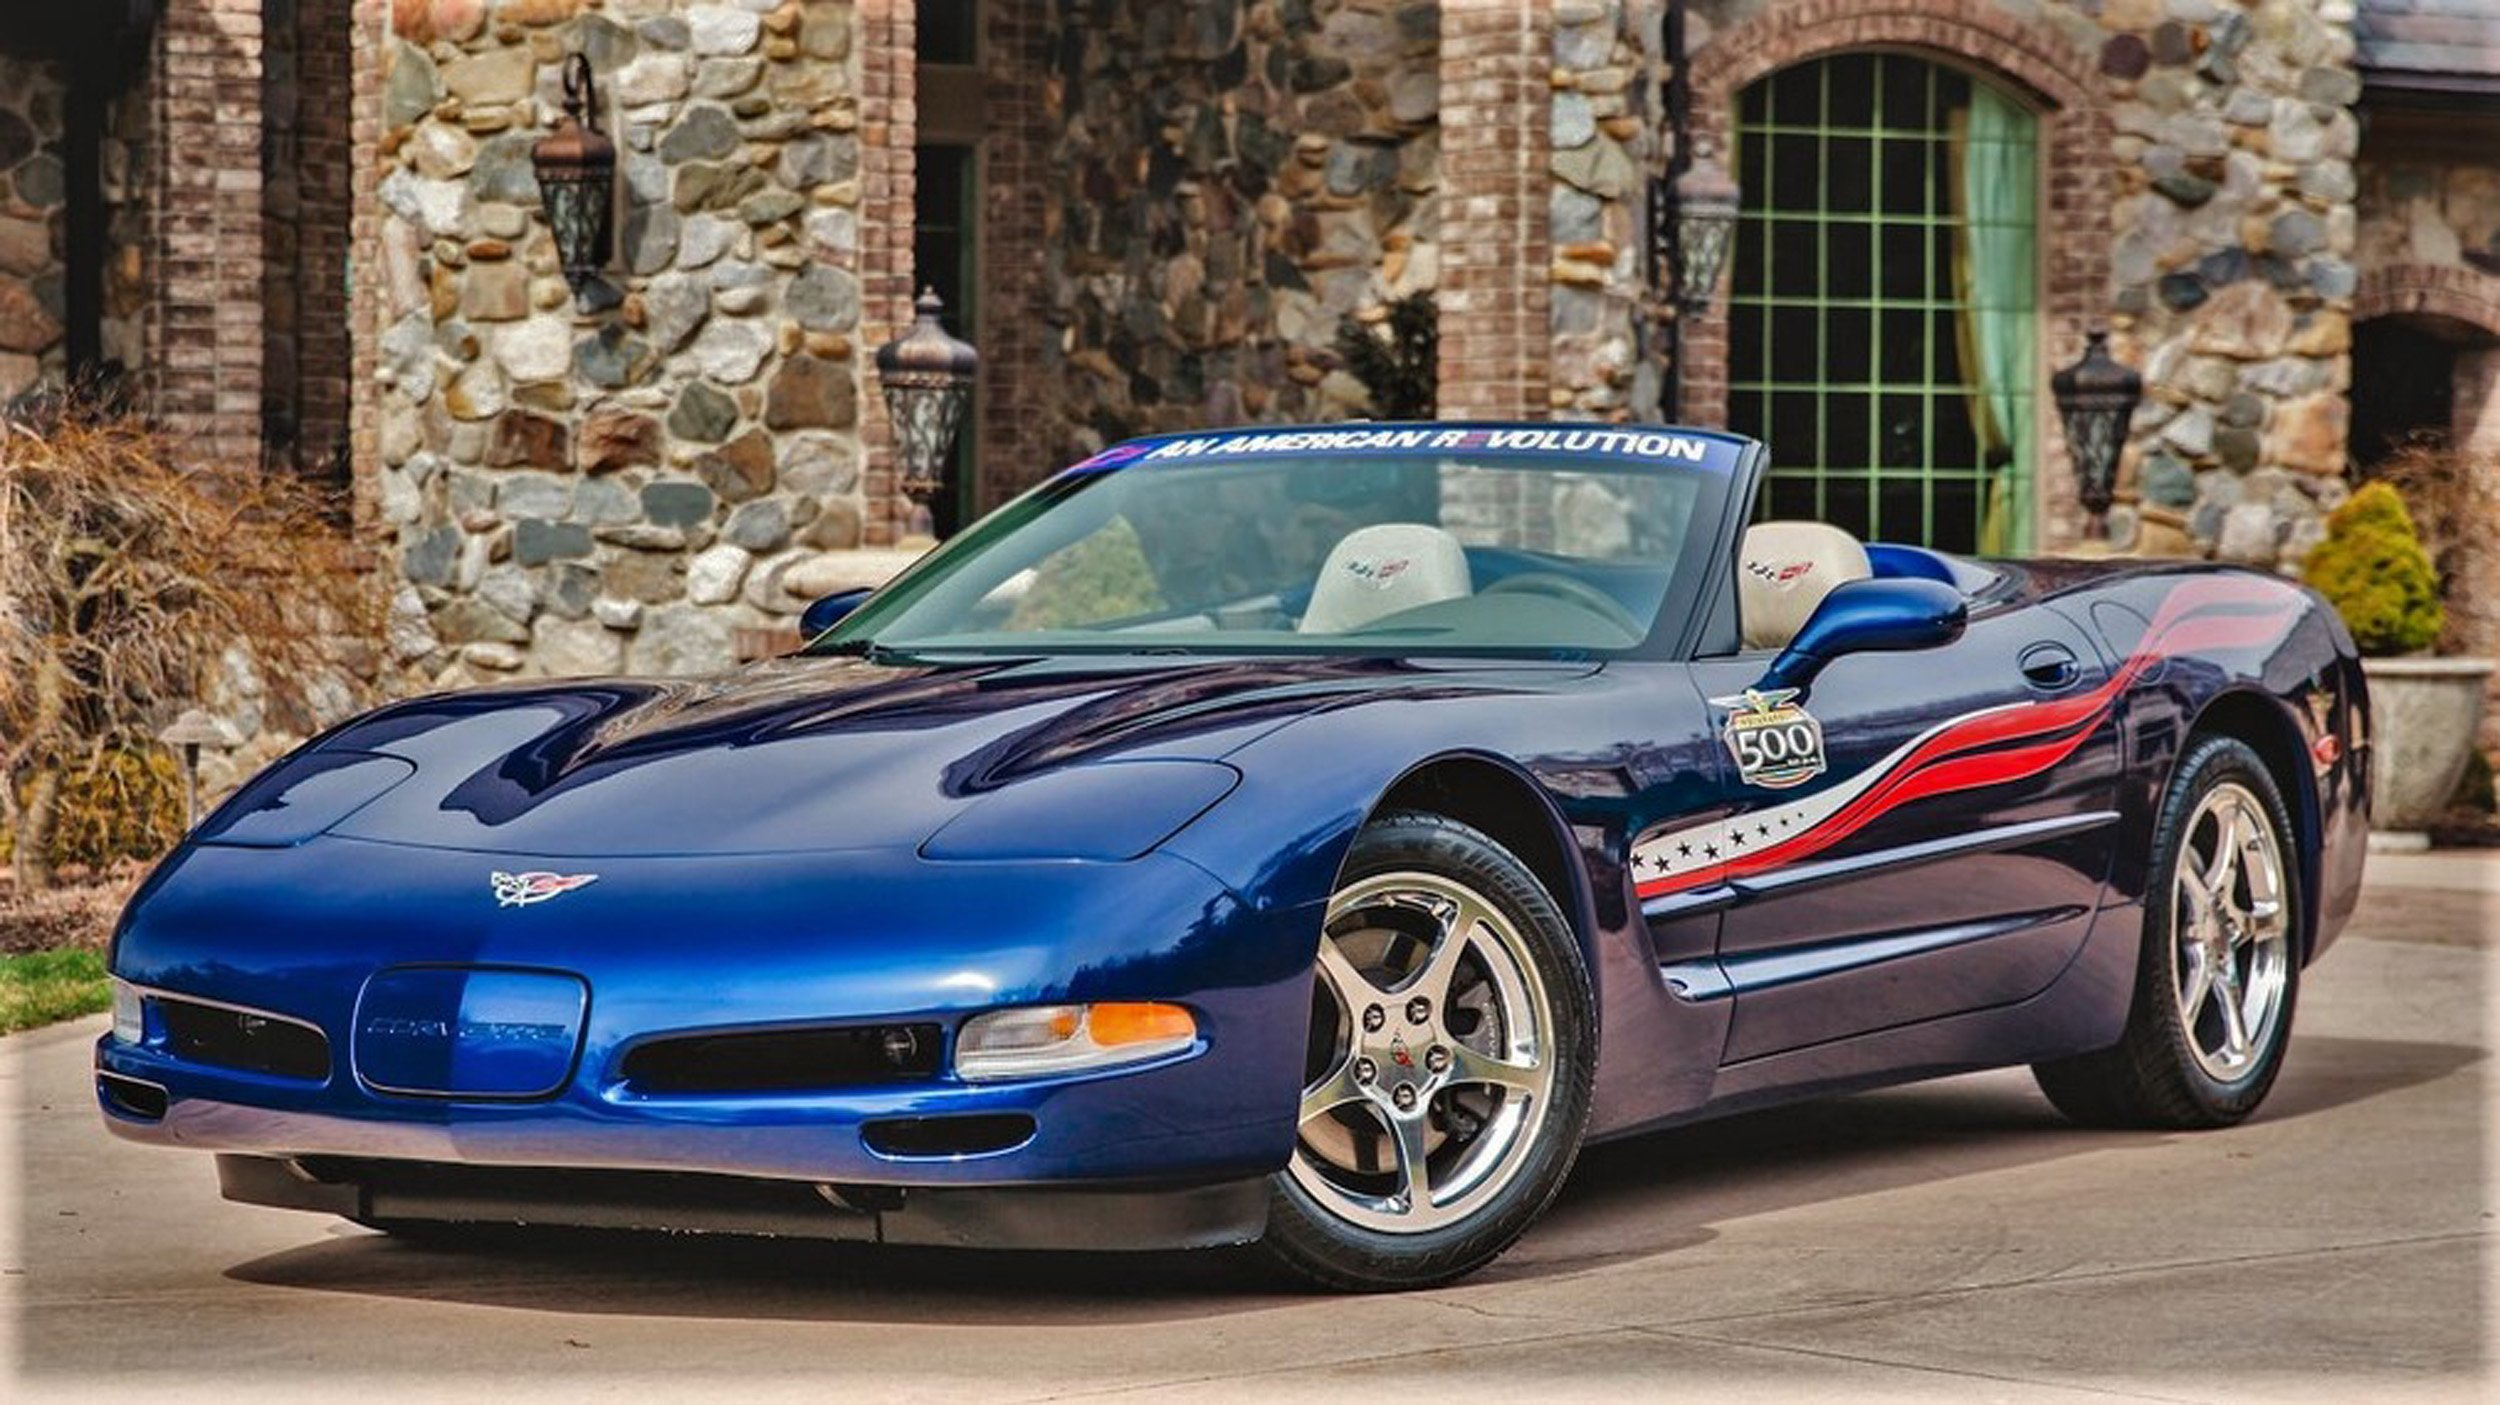 World s st Collection Indianapolis 500 Pace Cars For Sale At